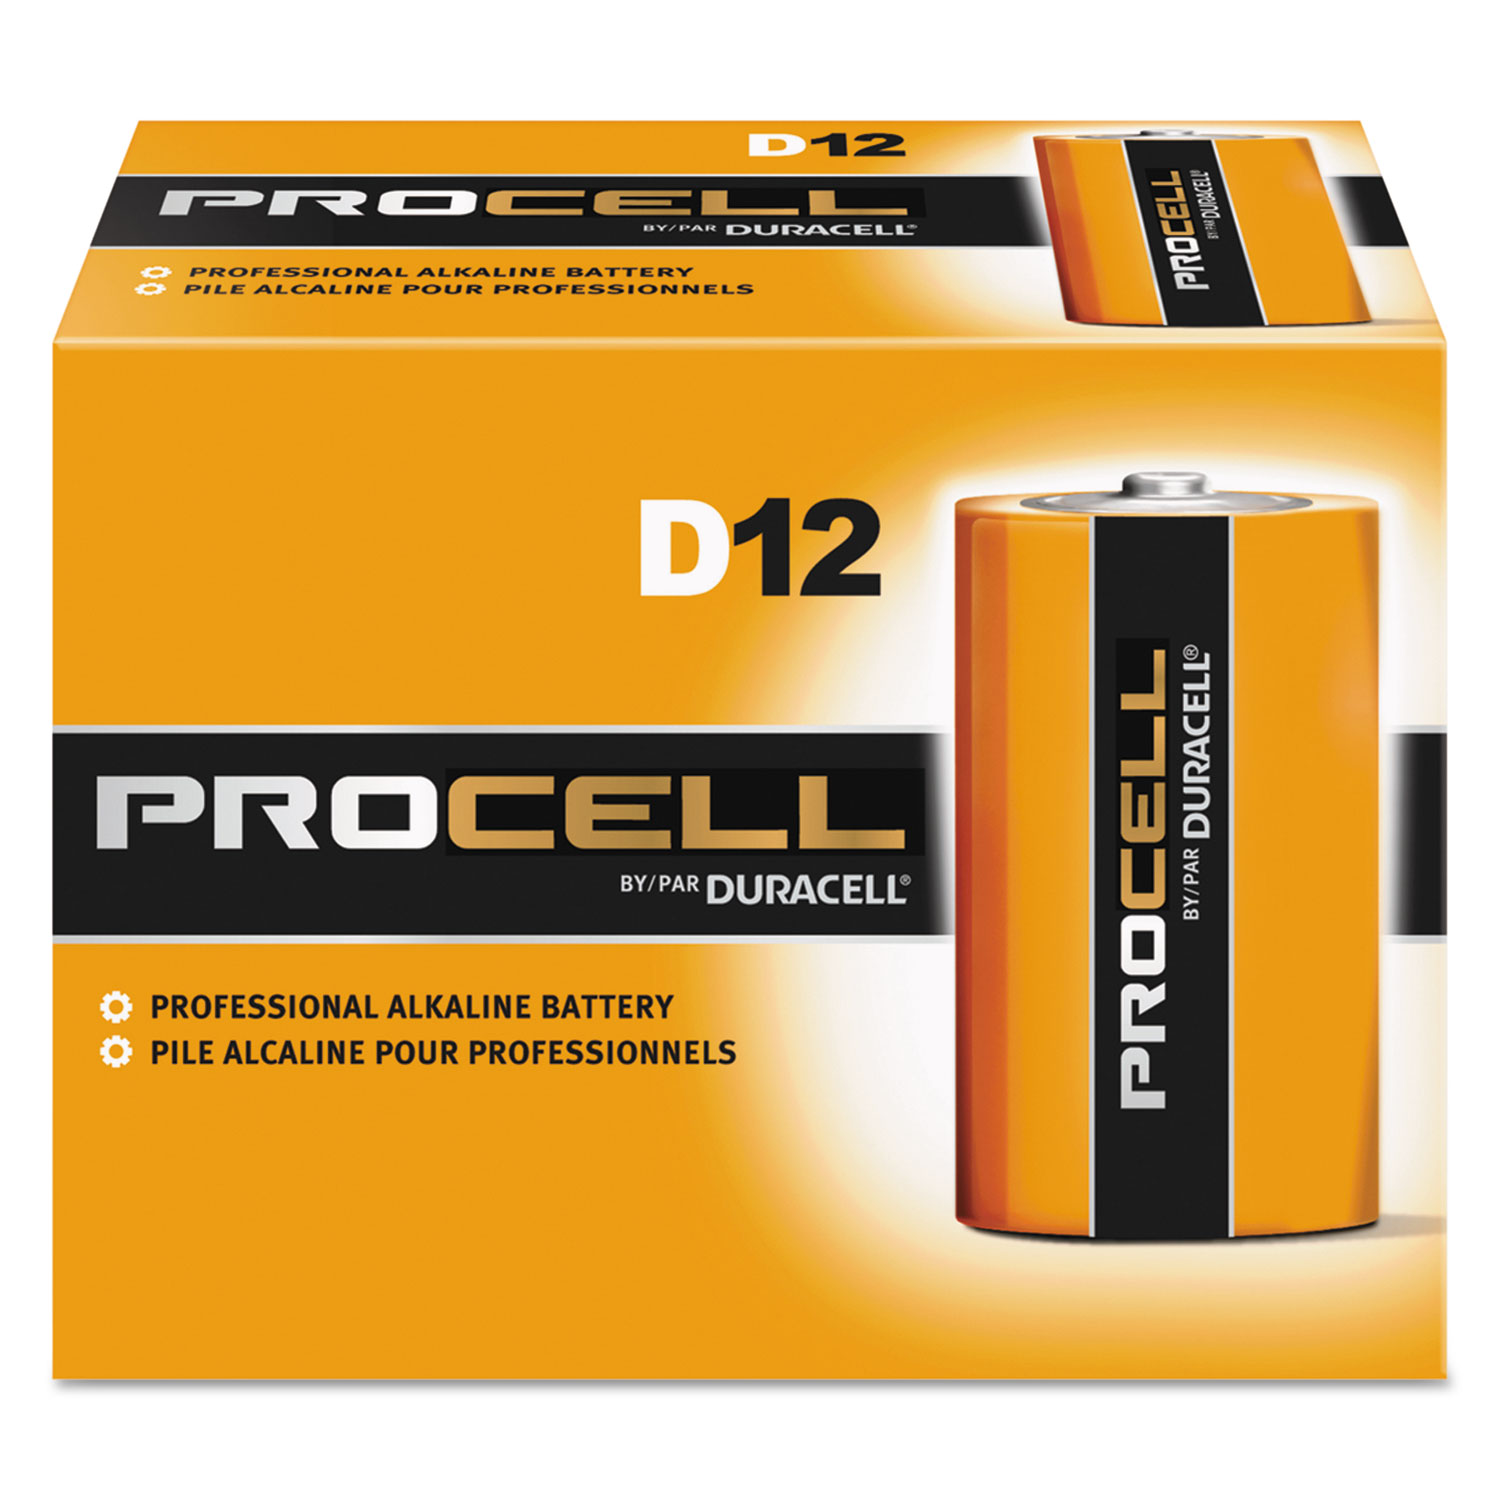 Procell Alkaline Batteries By Duracell 174 Durpc1300